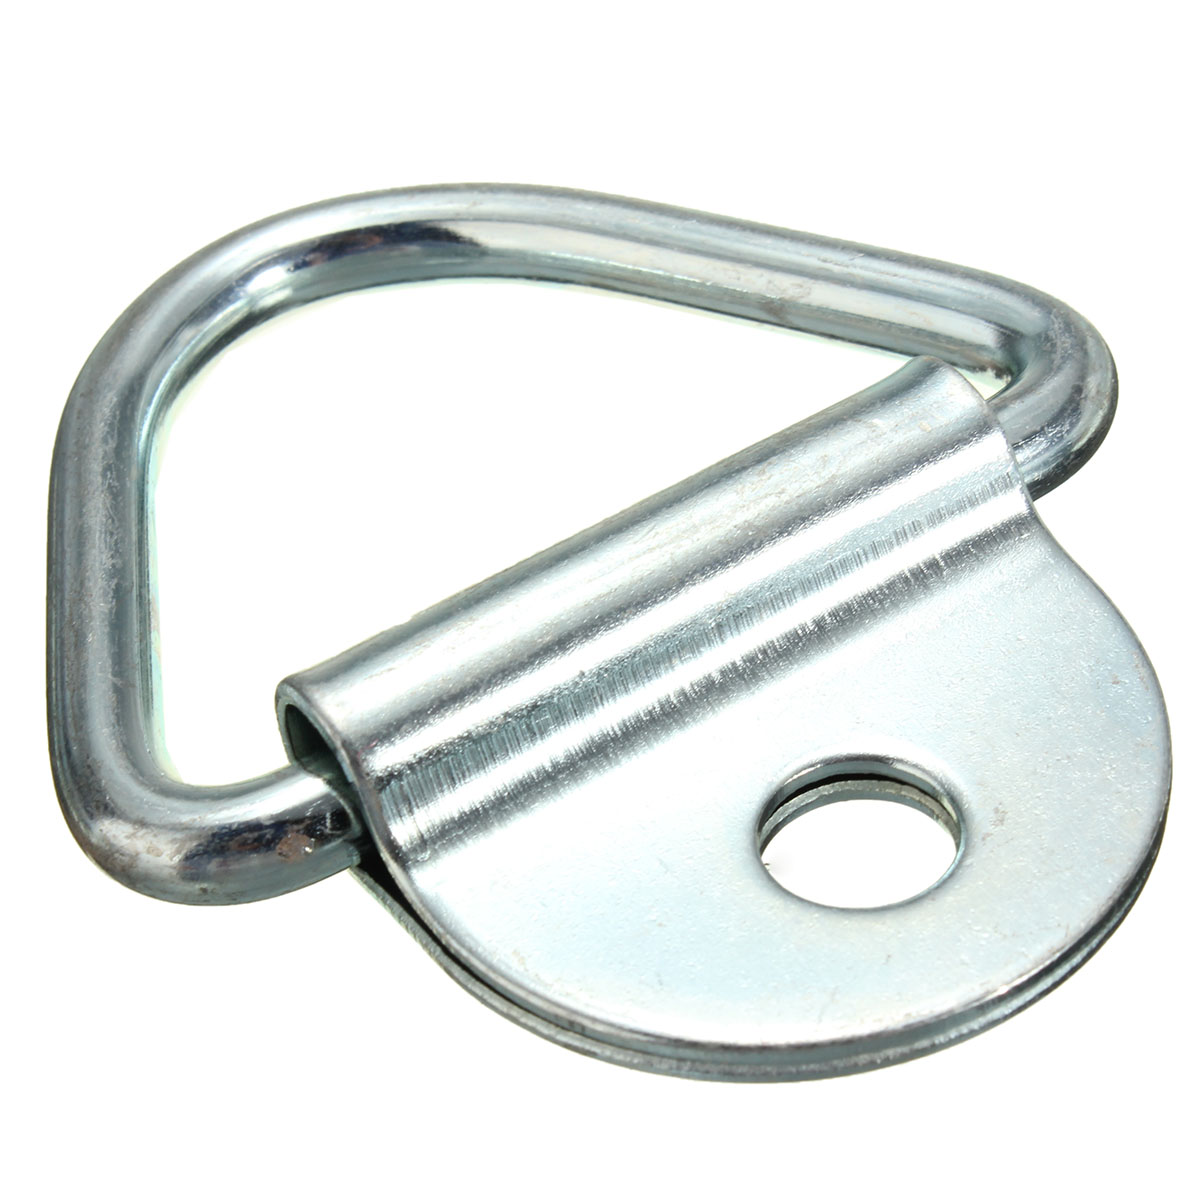 Tie Down Lashing Ring Cheat Zinc Plated For Truck Trailer for Van ...